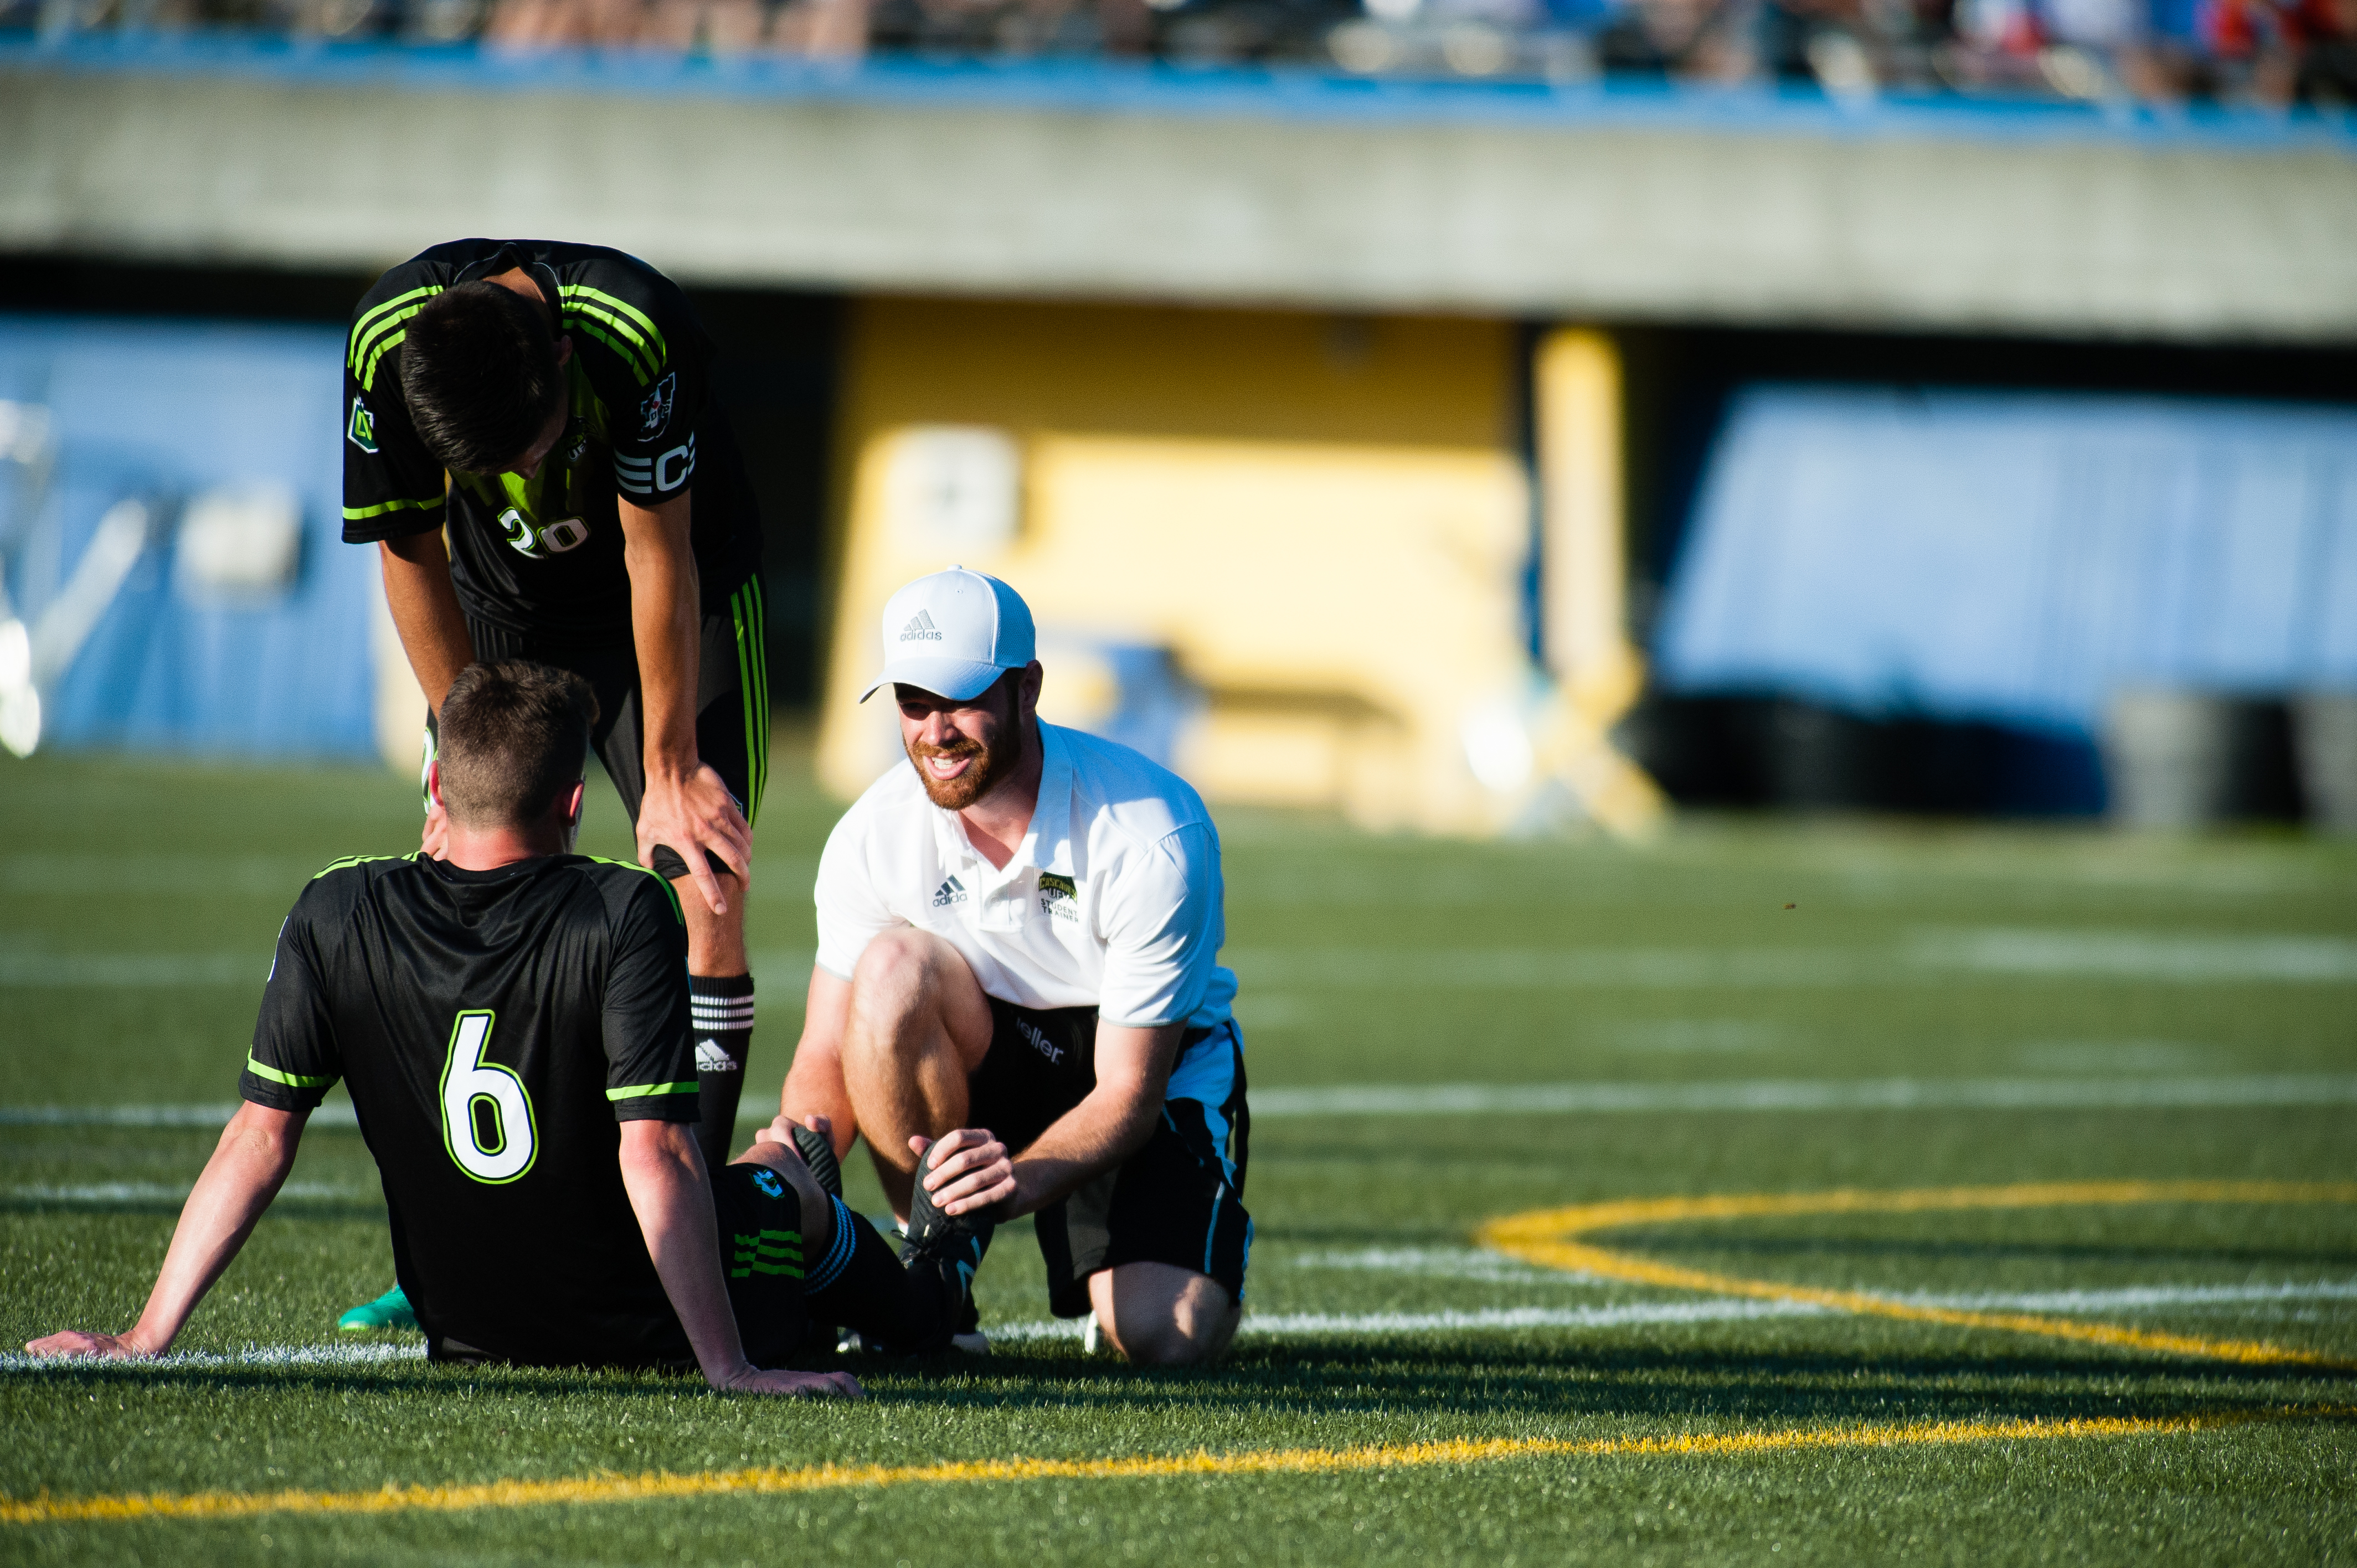 A trainer helps Cascades midfielder Spencer Williams after an injury in the first half. Williams later left the stadium on crutches.